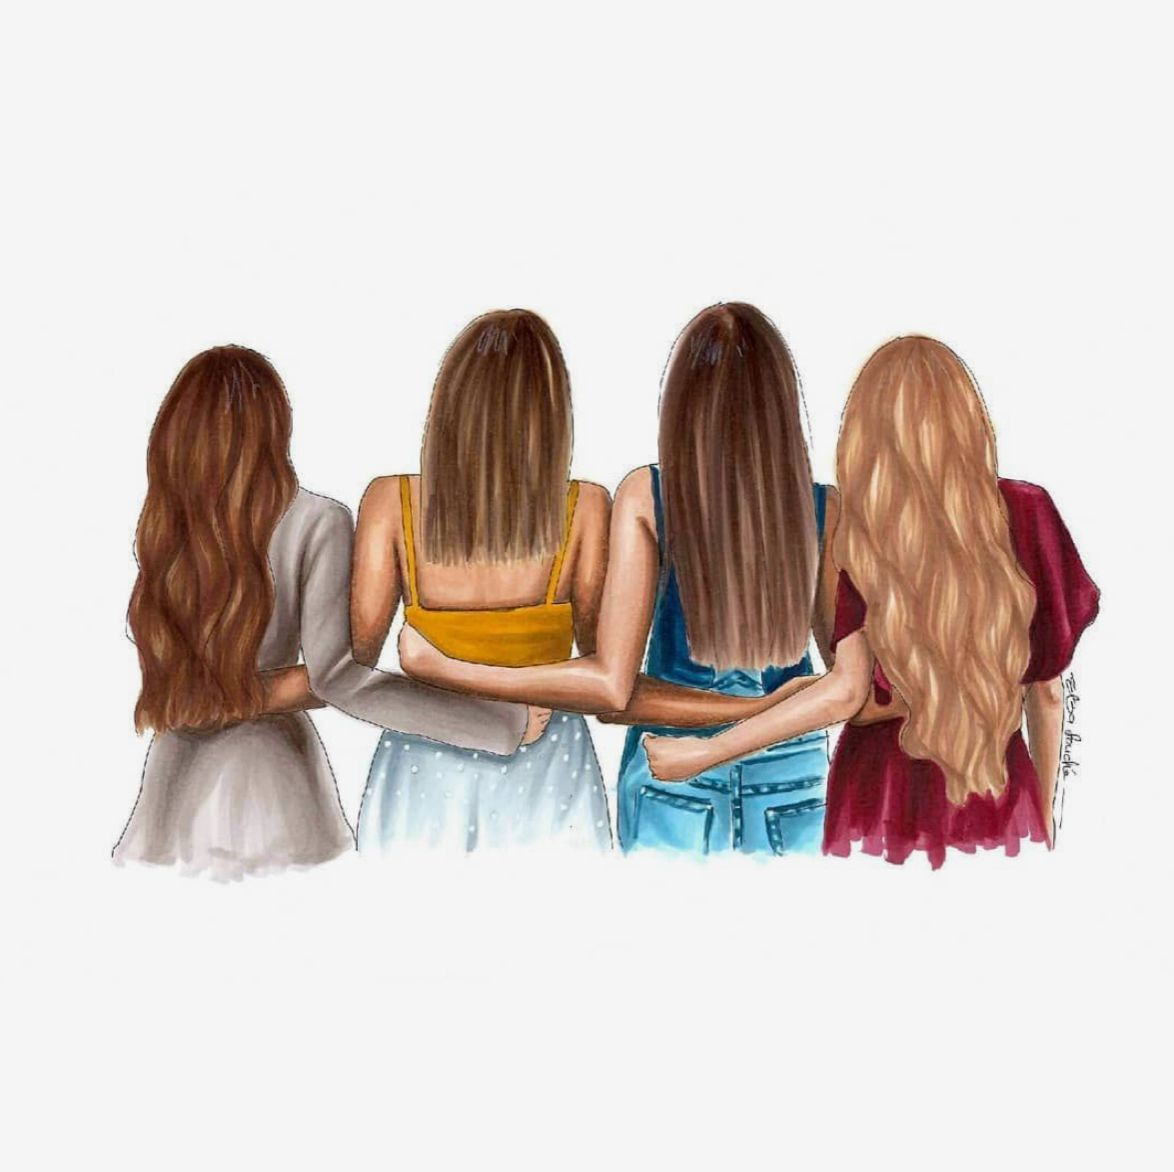 Hey here is a pin for all your besties girls!! Nidz